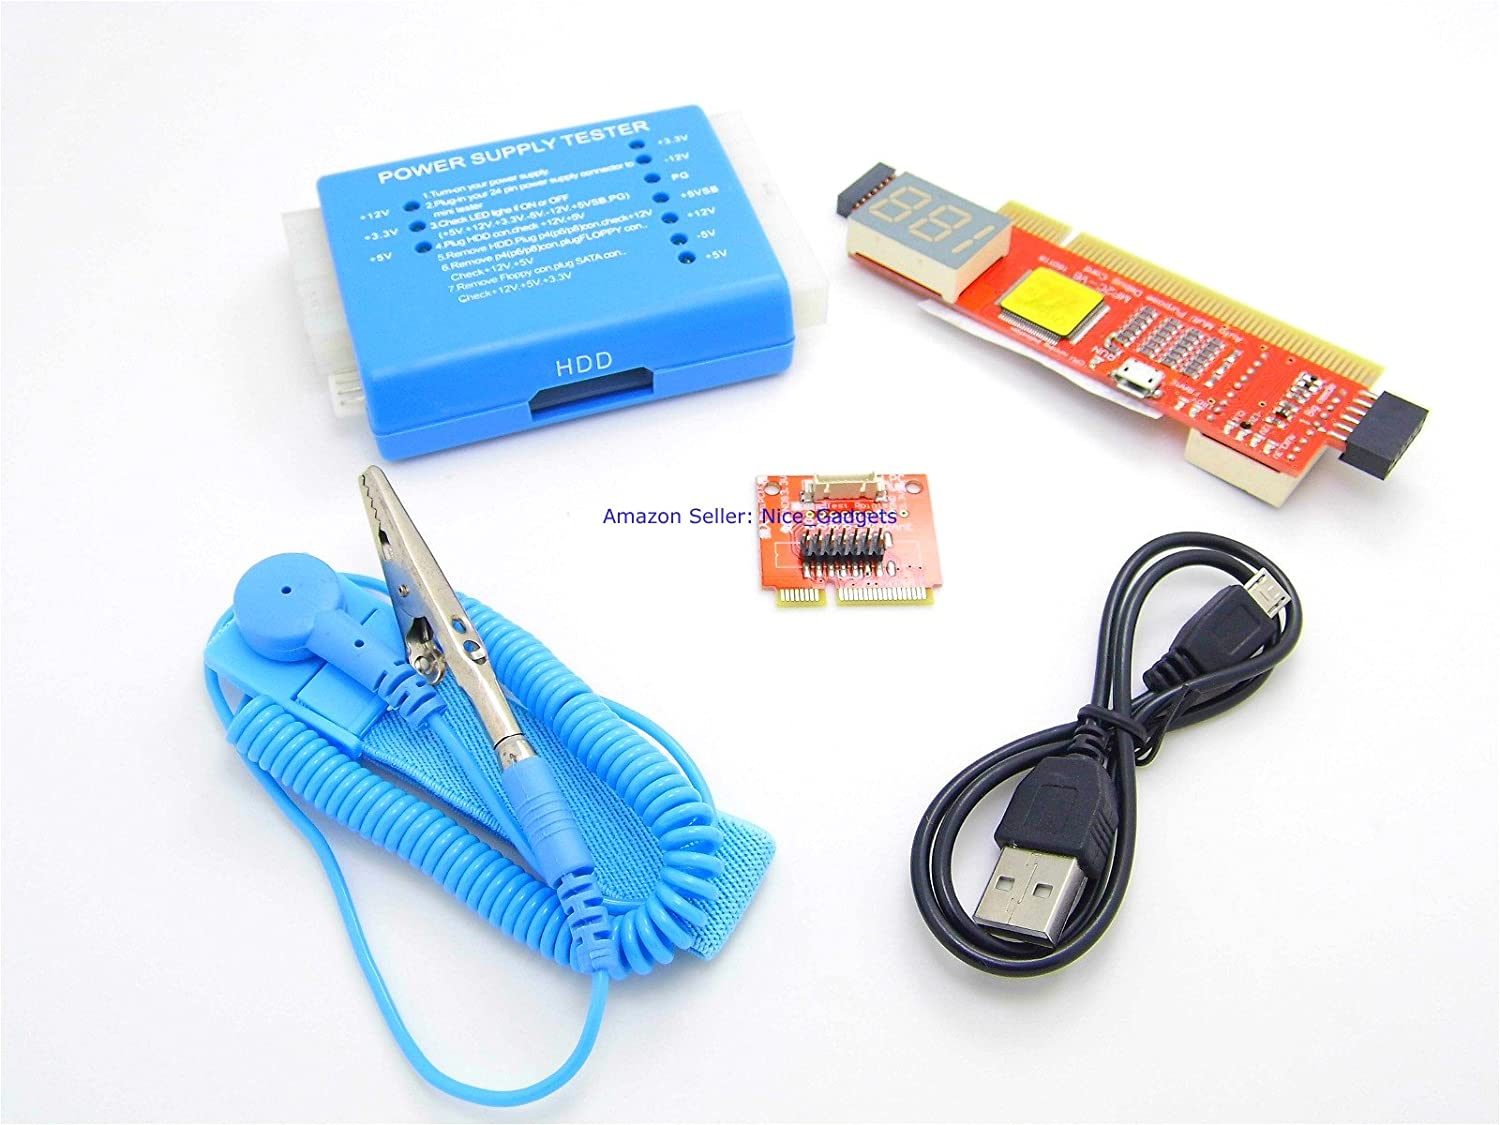 New Complete Pc Laptop Motherboard Cpu Power Supply Diagnostic Test Kit Amazon Co Uk Computers Accessories